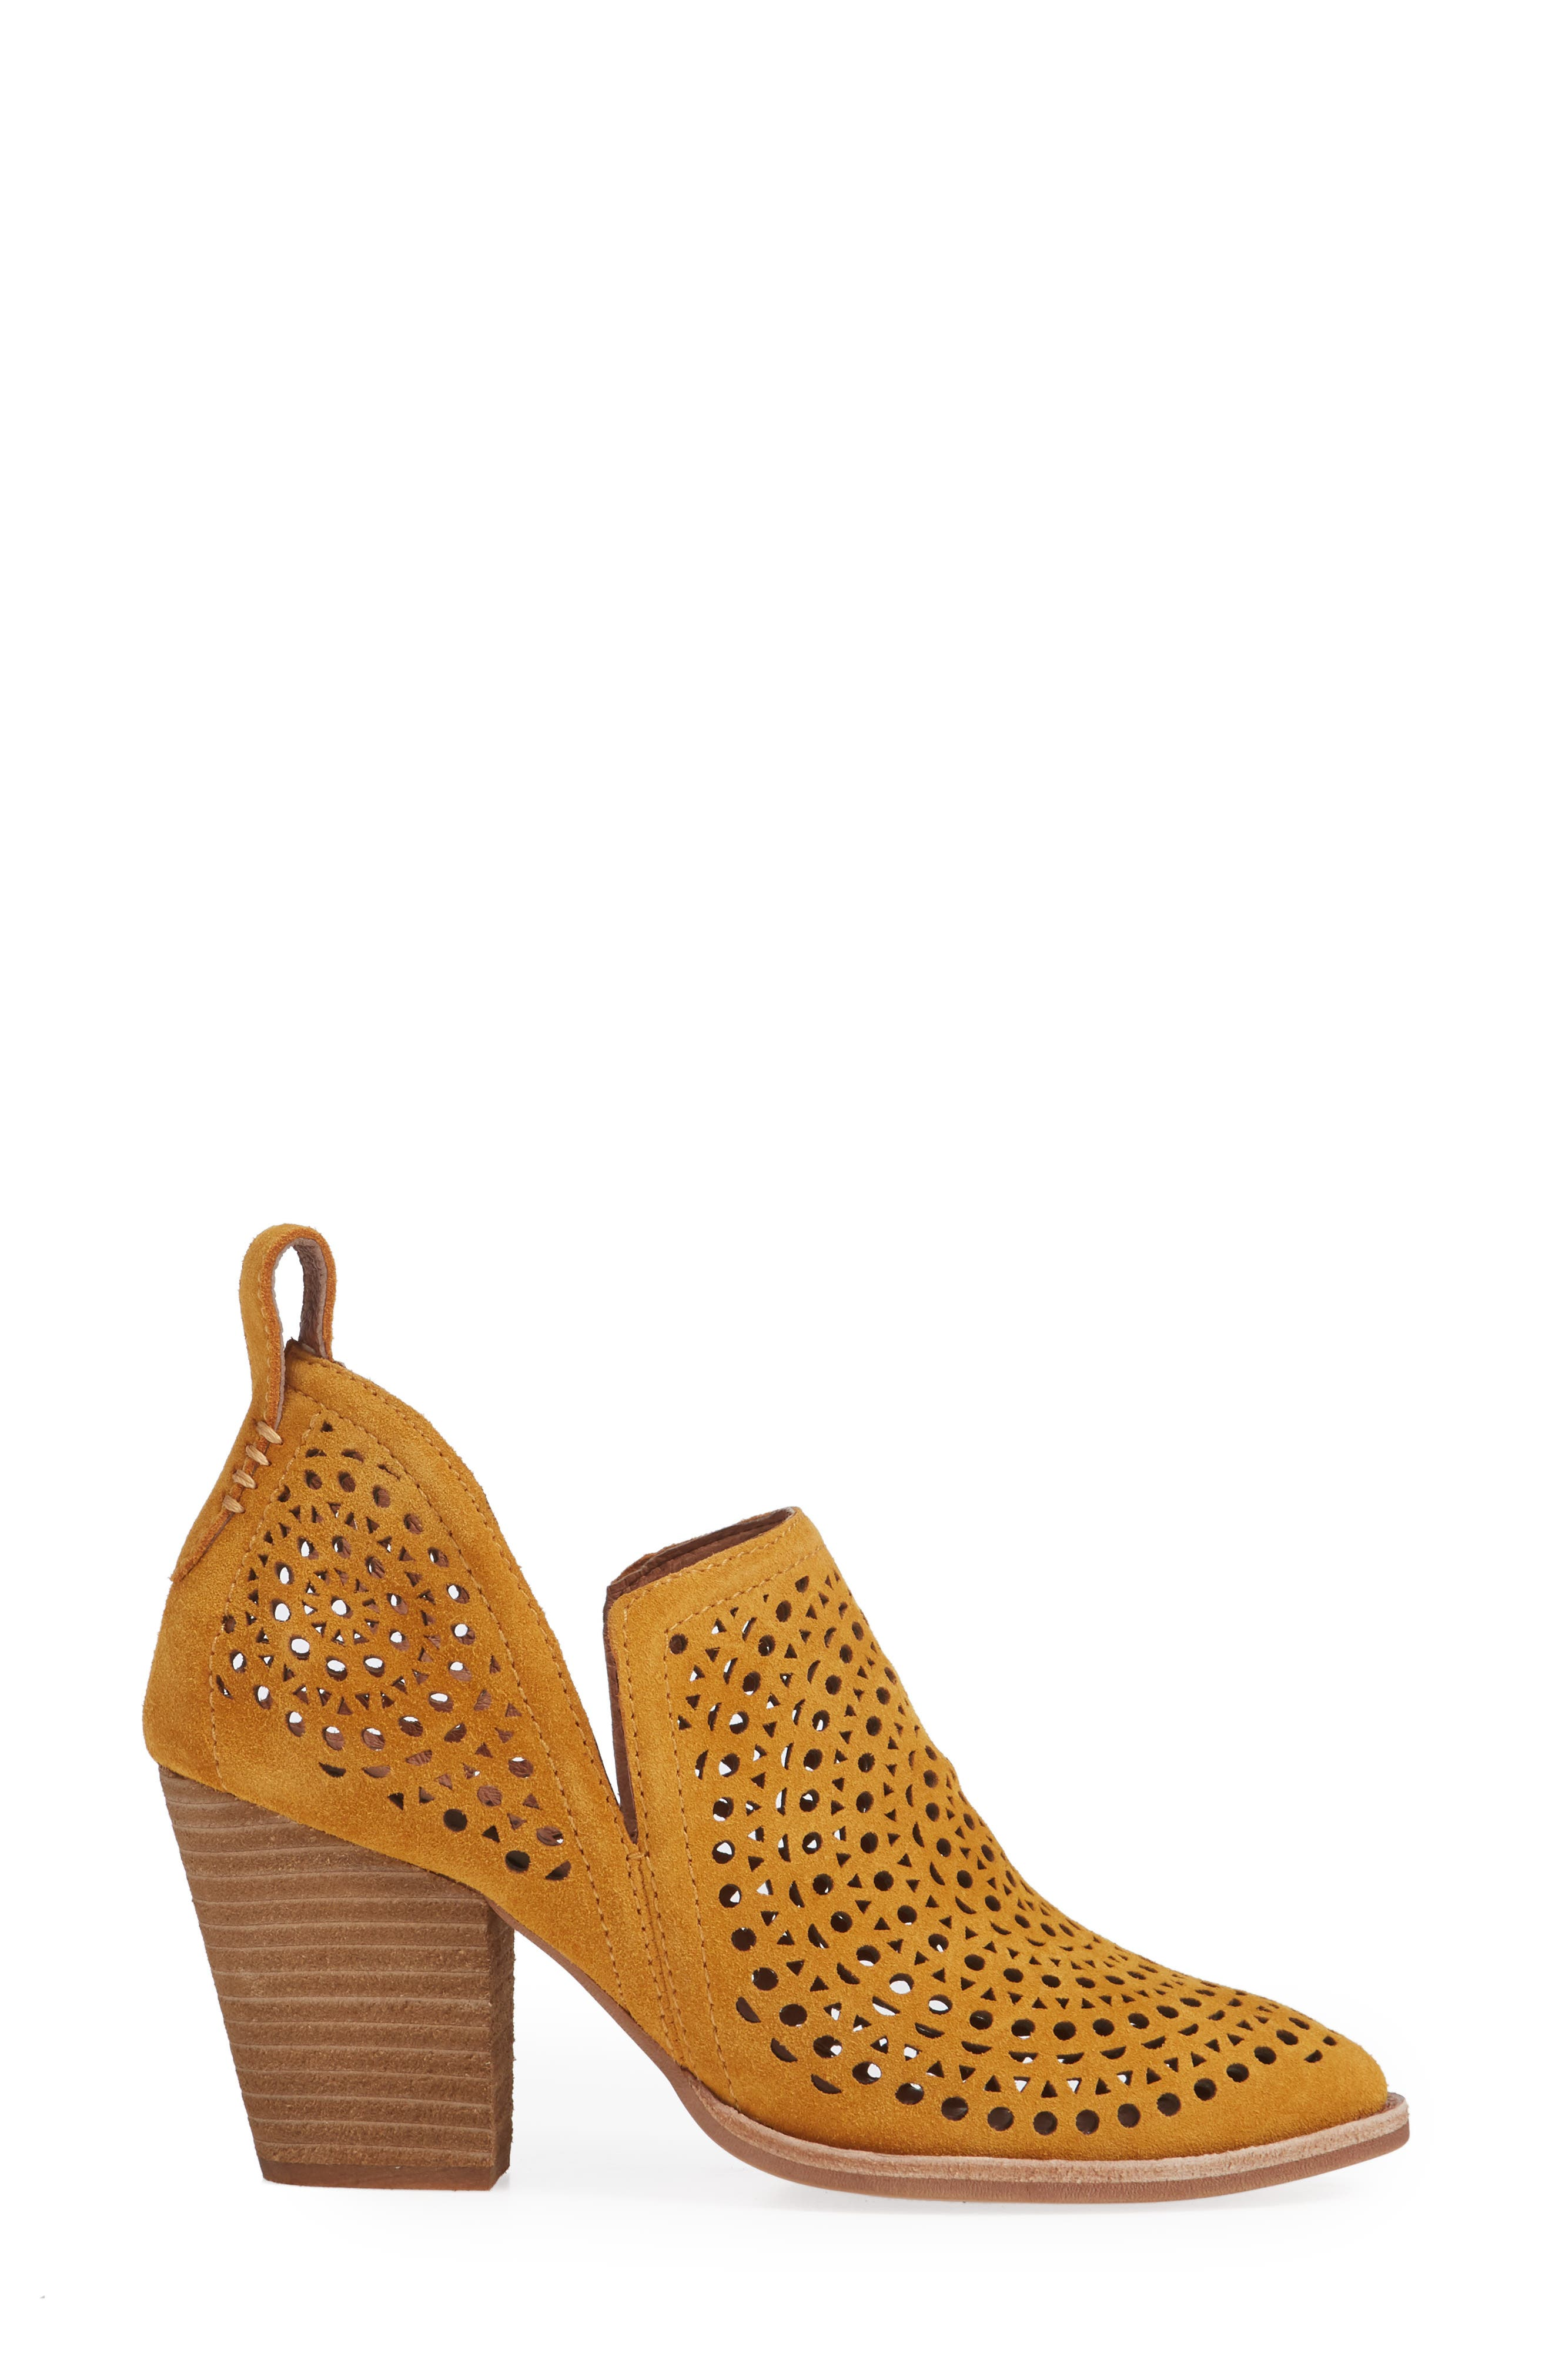 Rosalee Bootie,                             Alternate thumbnail 5, color,                             Mustard Suede